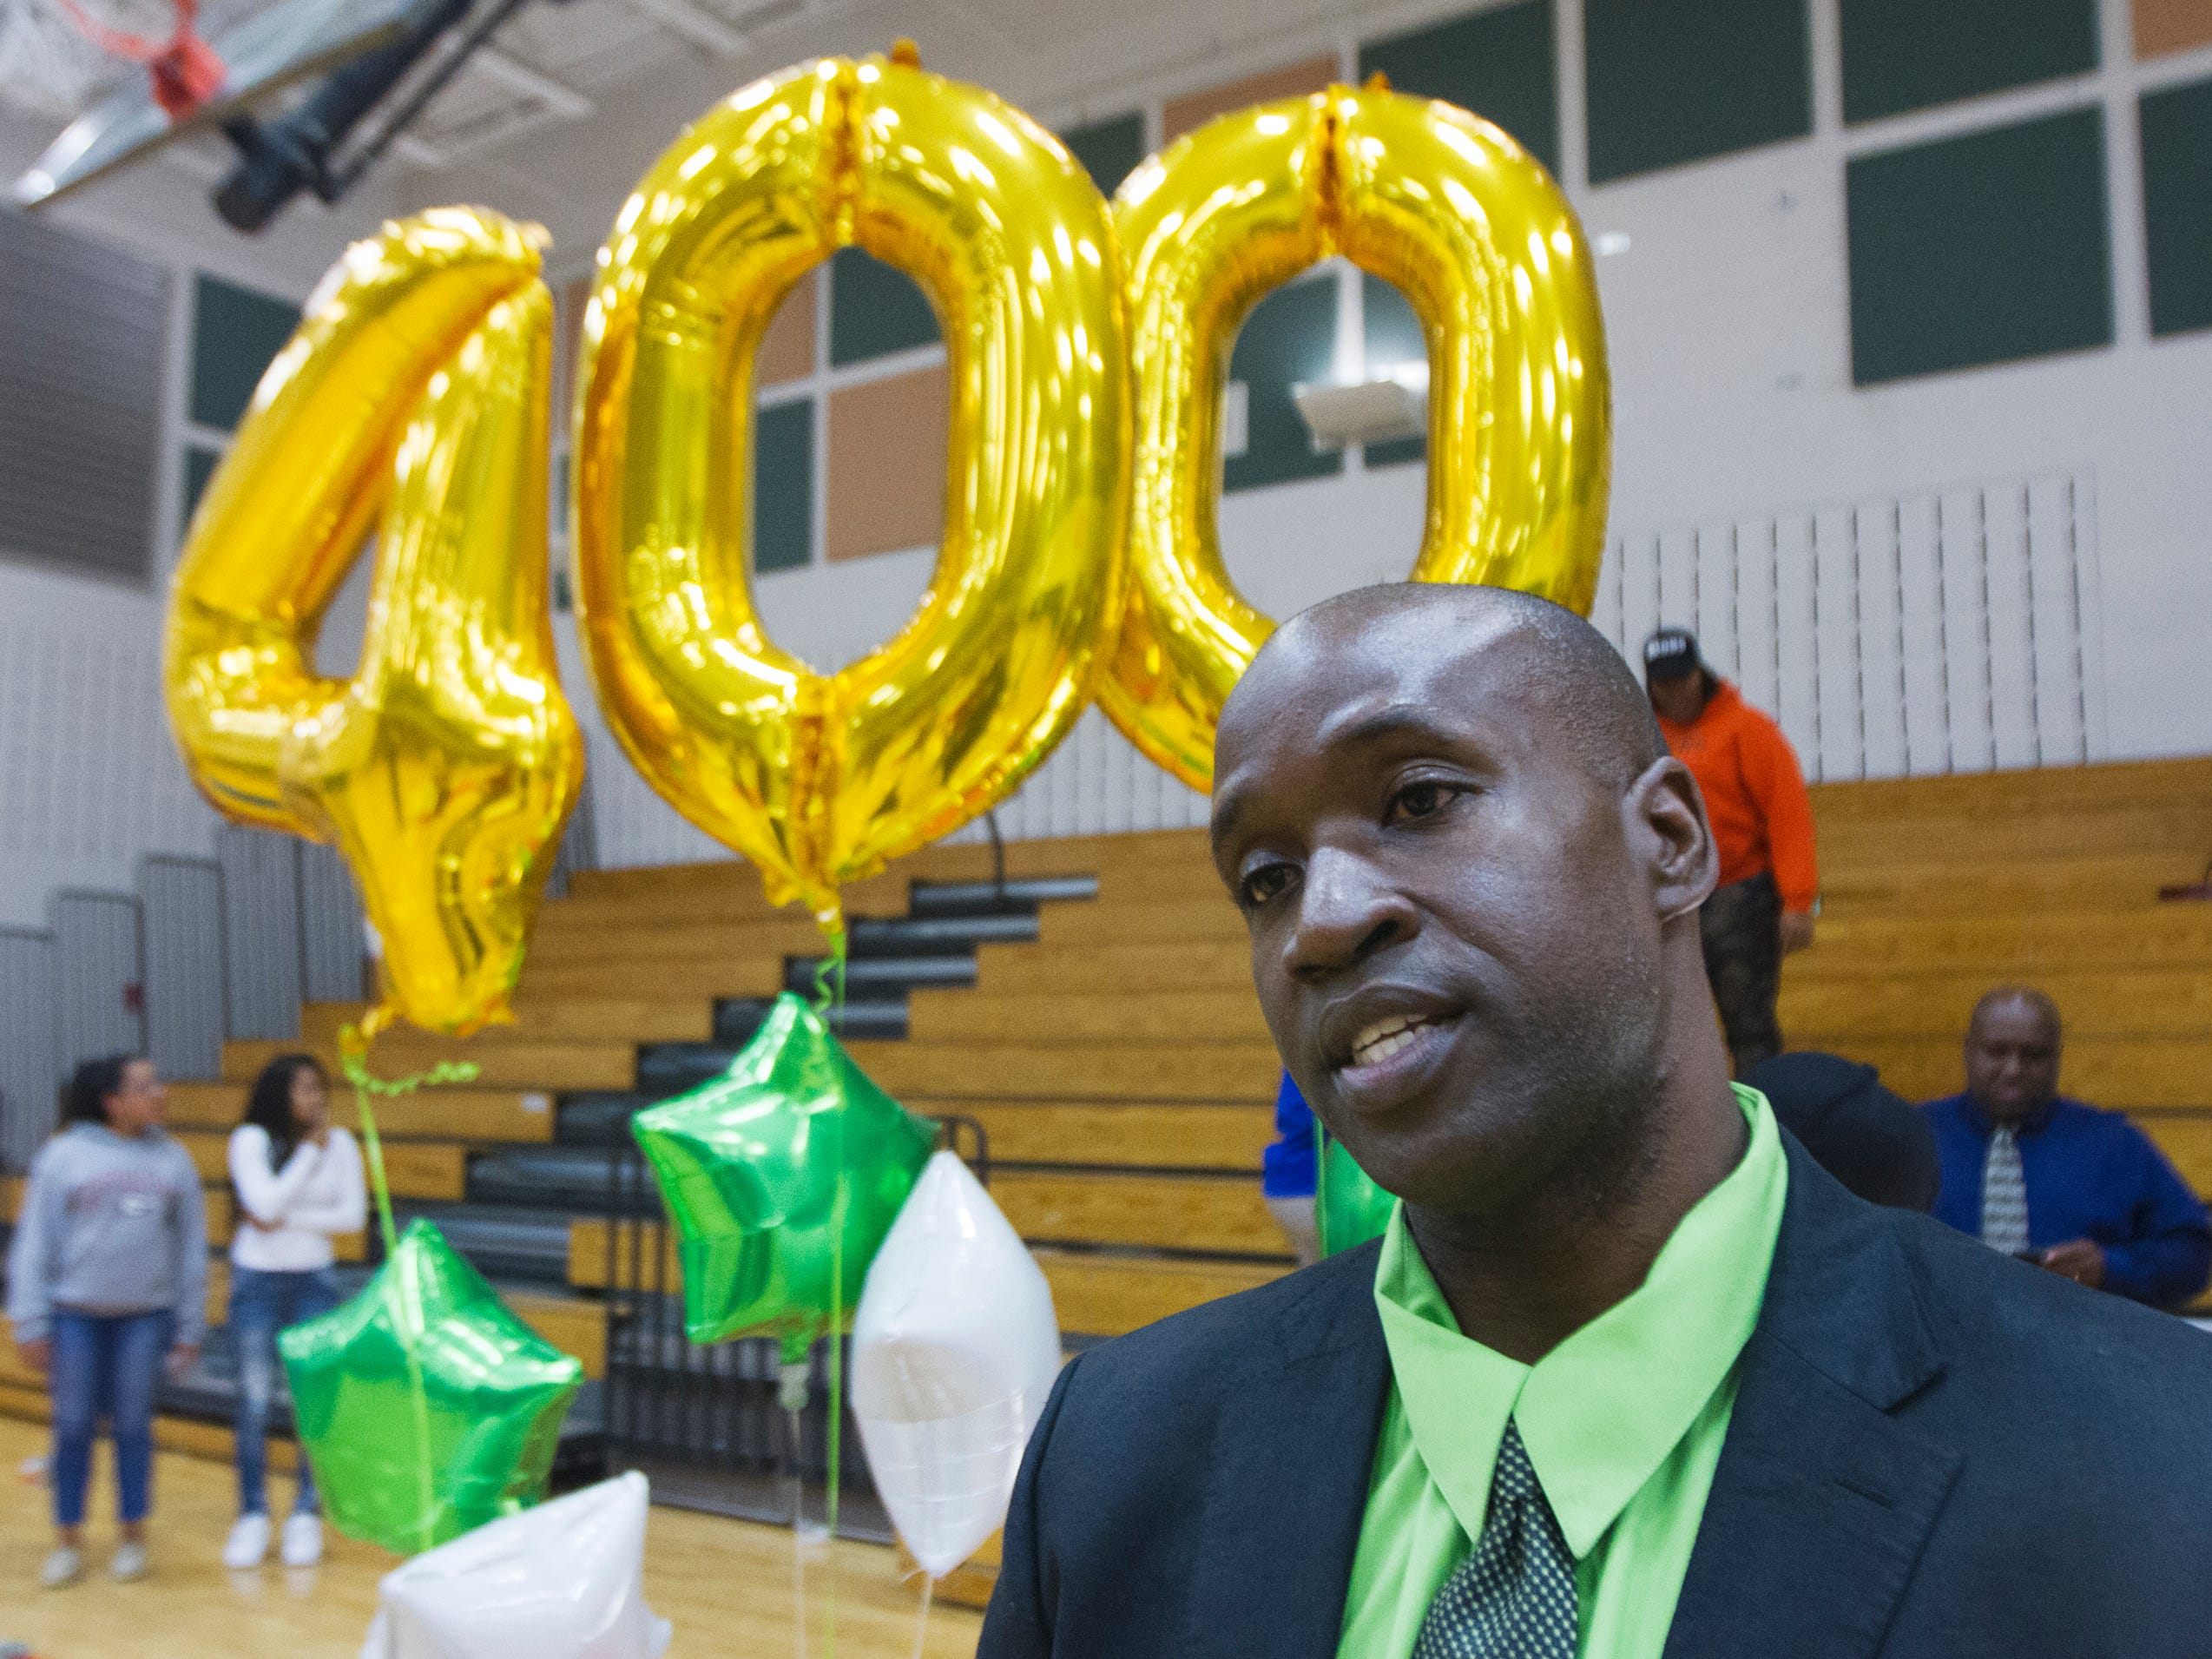 Dwayne Donnell, who led the Dunbar girls basketball team to a state title and has won 400 games, considers the late Jeff Sommer an invaluable mentor and Lee County coaching icon.